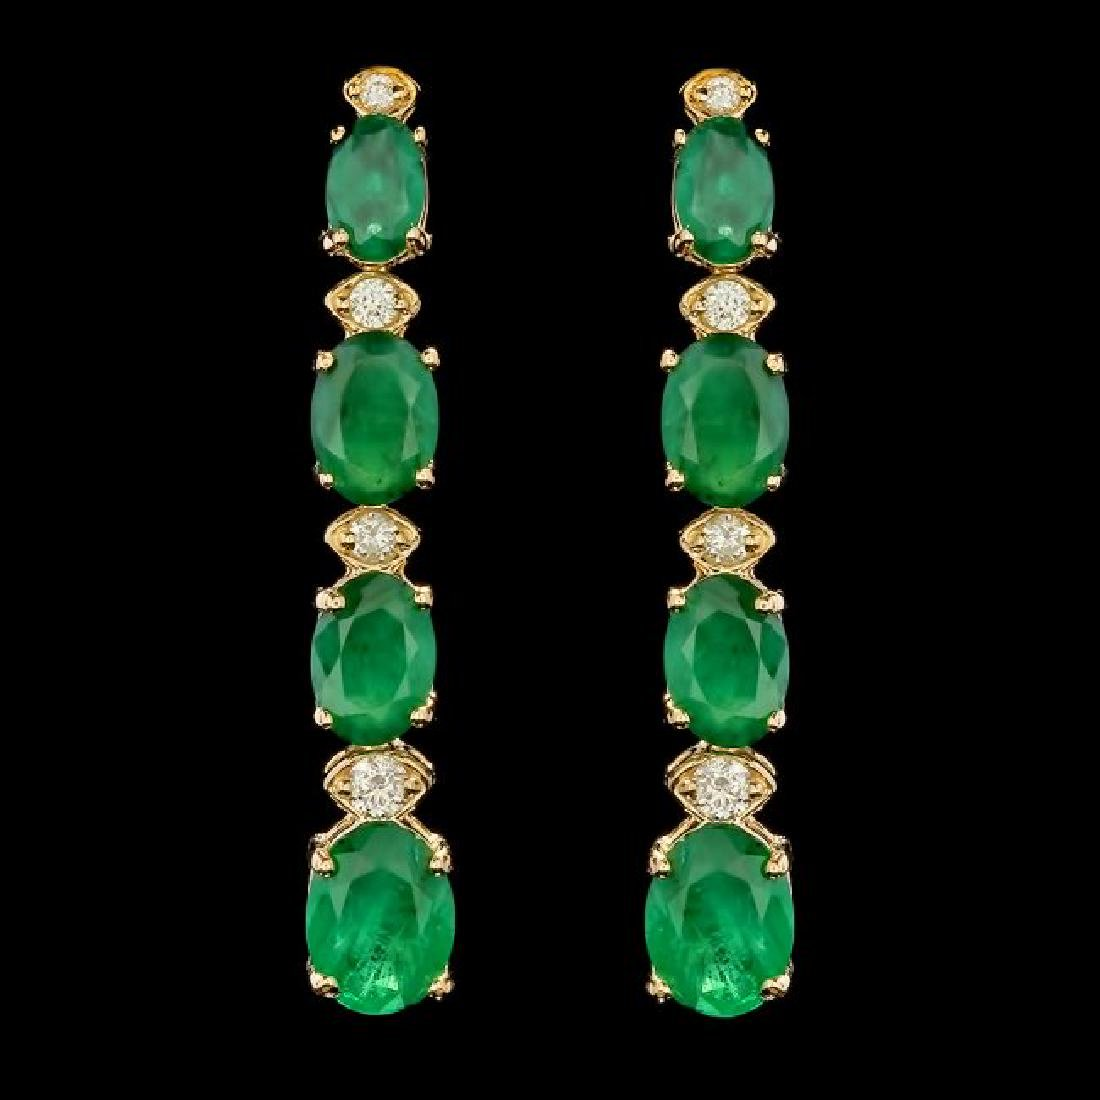 14k Gold 5.50ct Emerald 0.35ct Diamond Earrings